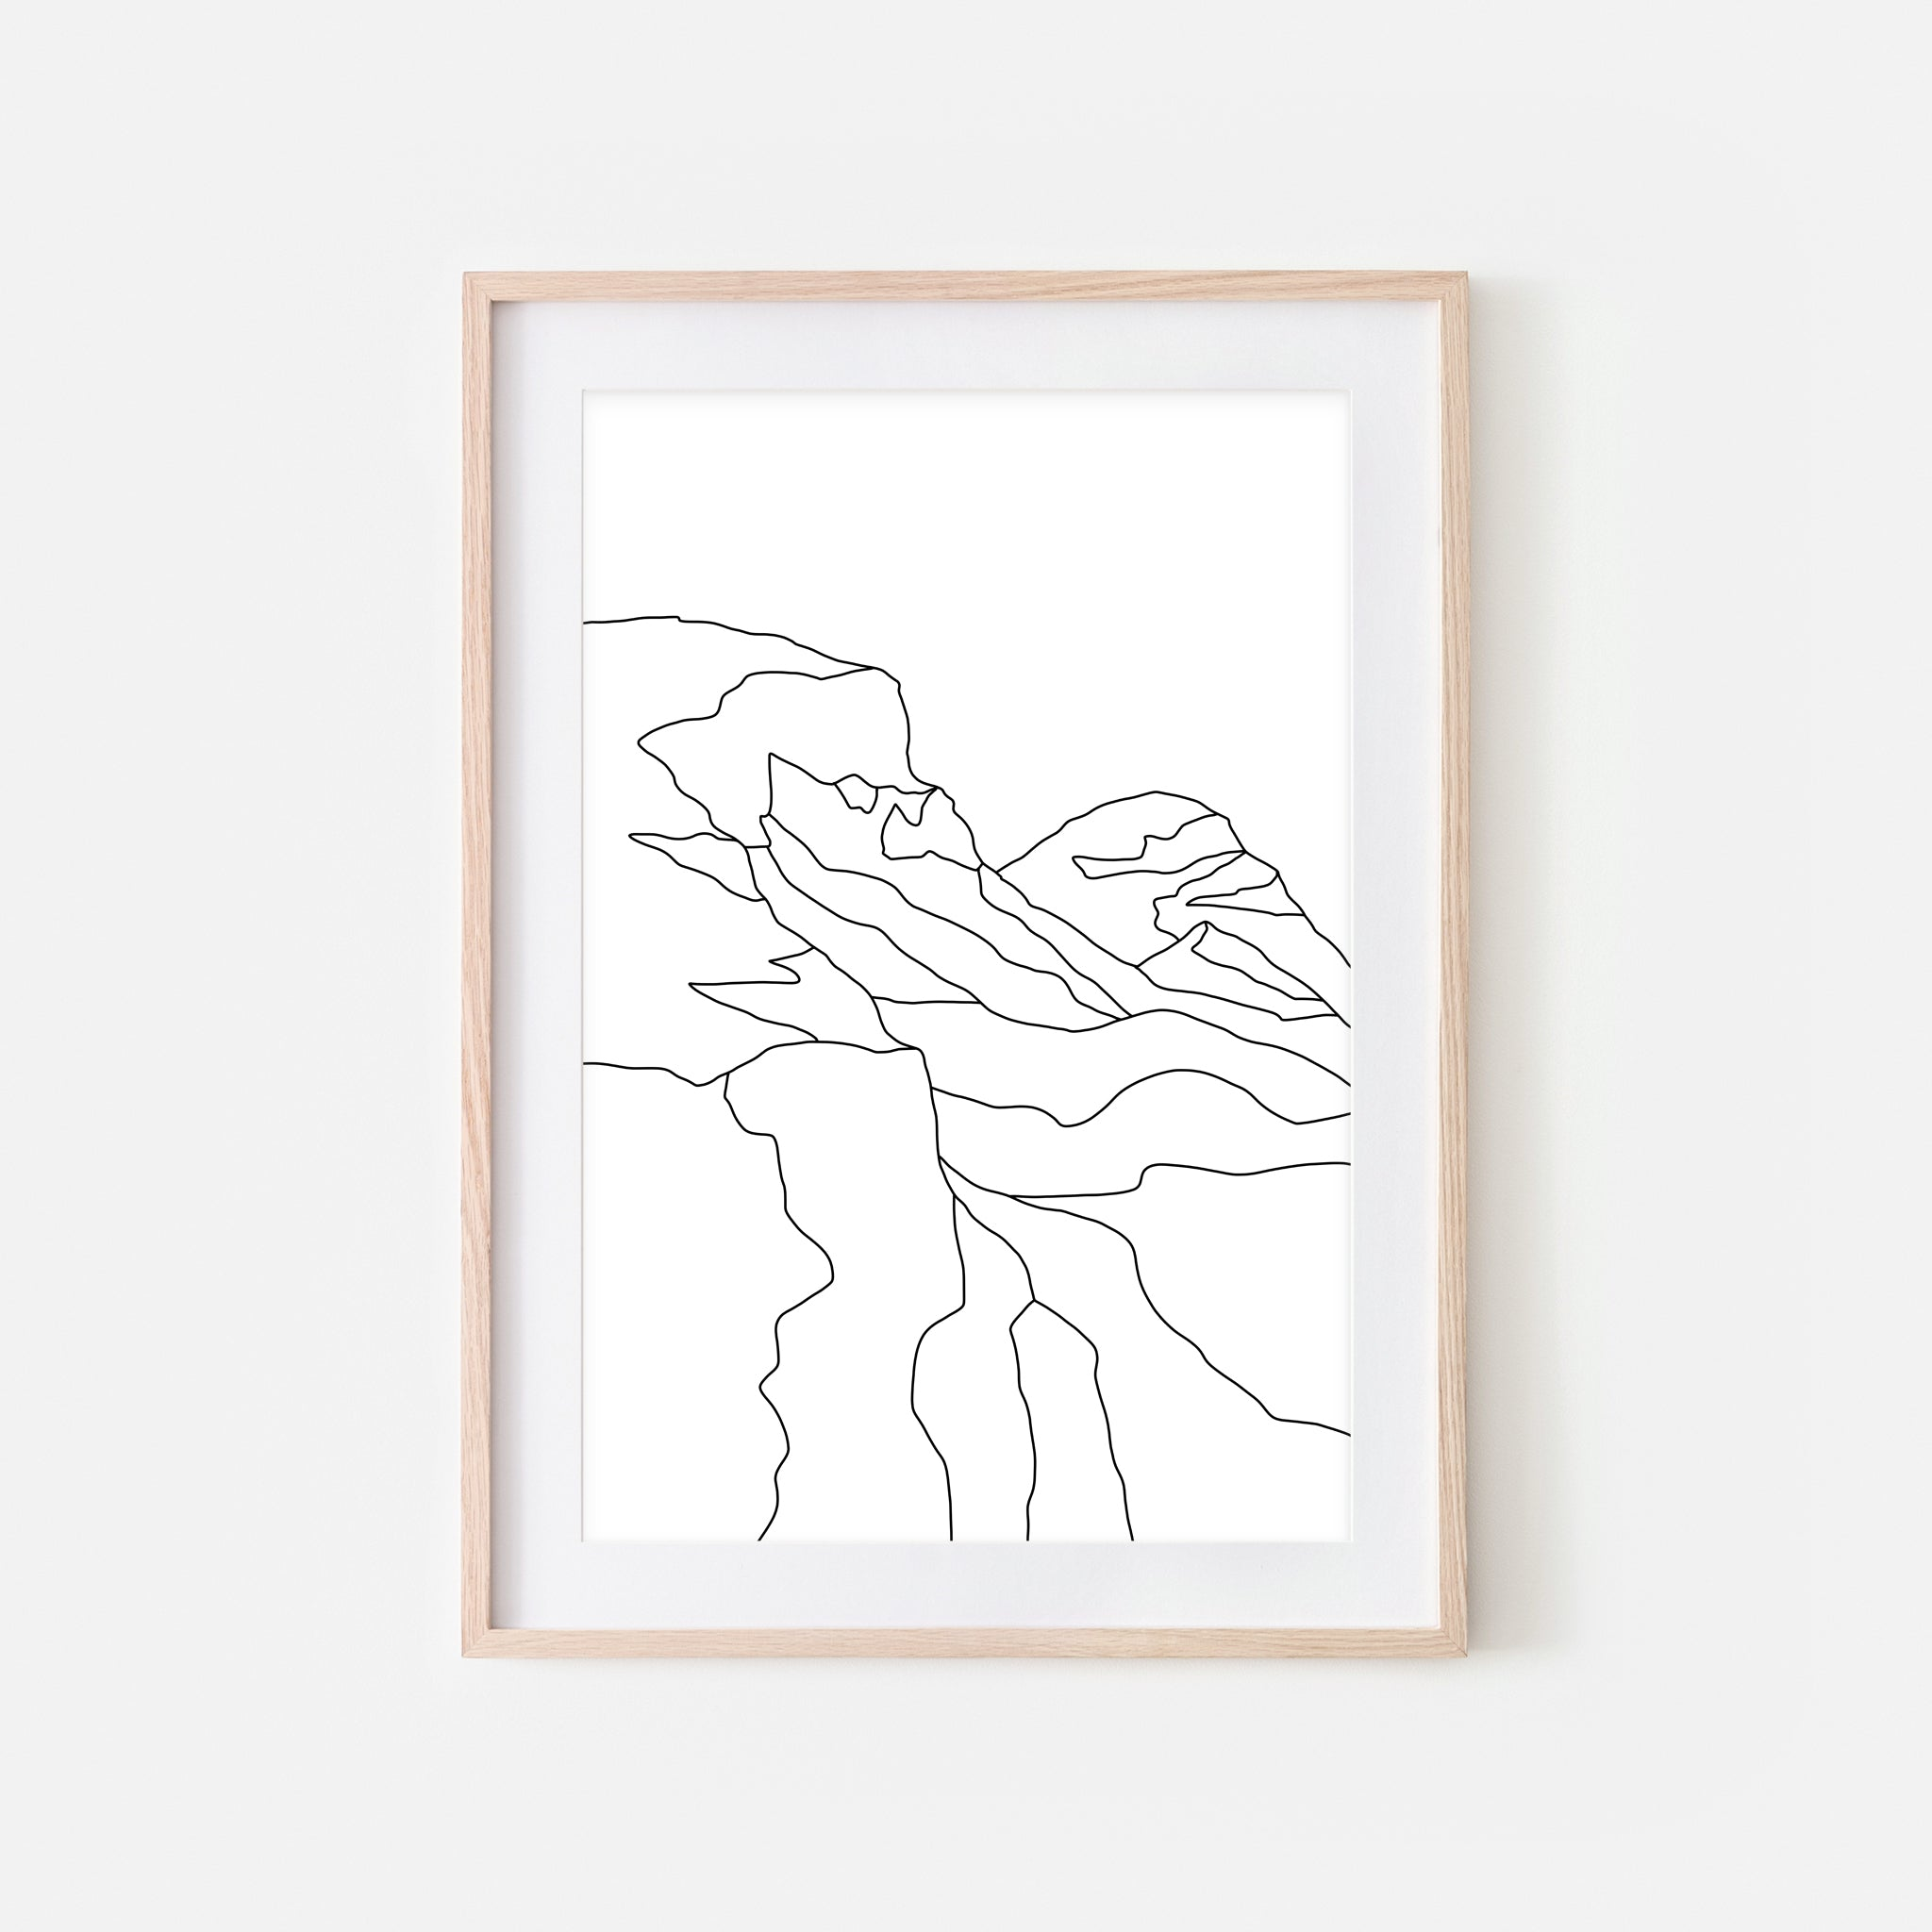 Mountains No. 2 Wall Art - Minimalist Abstract Landscape Line Drawing - Black and White Print, Poster or Printable Download